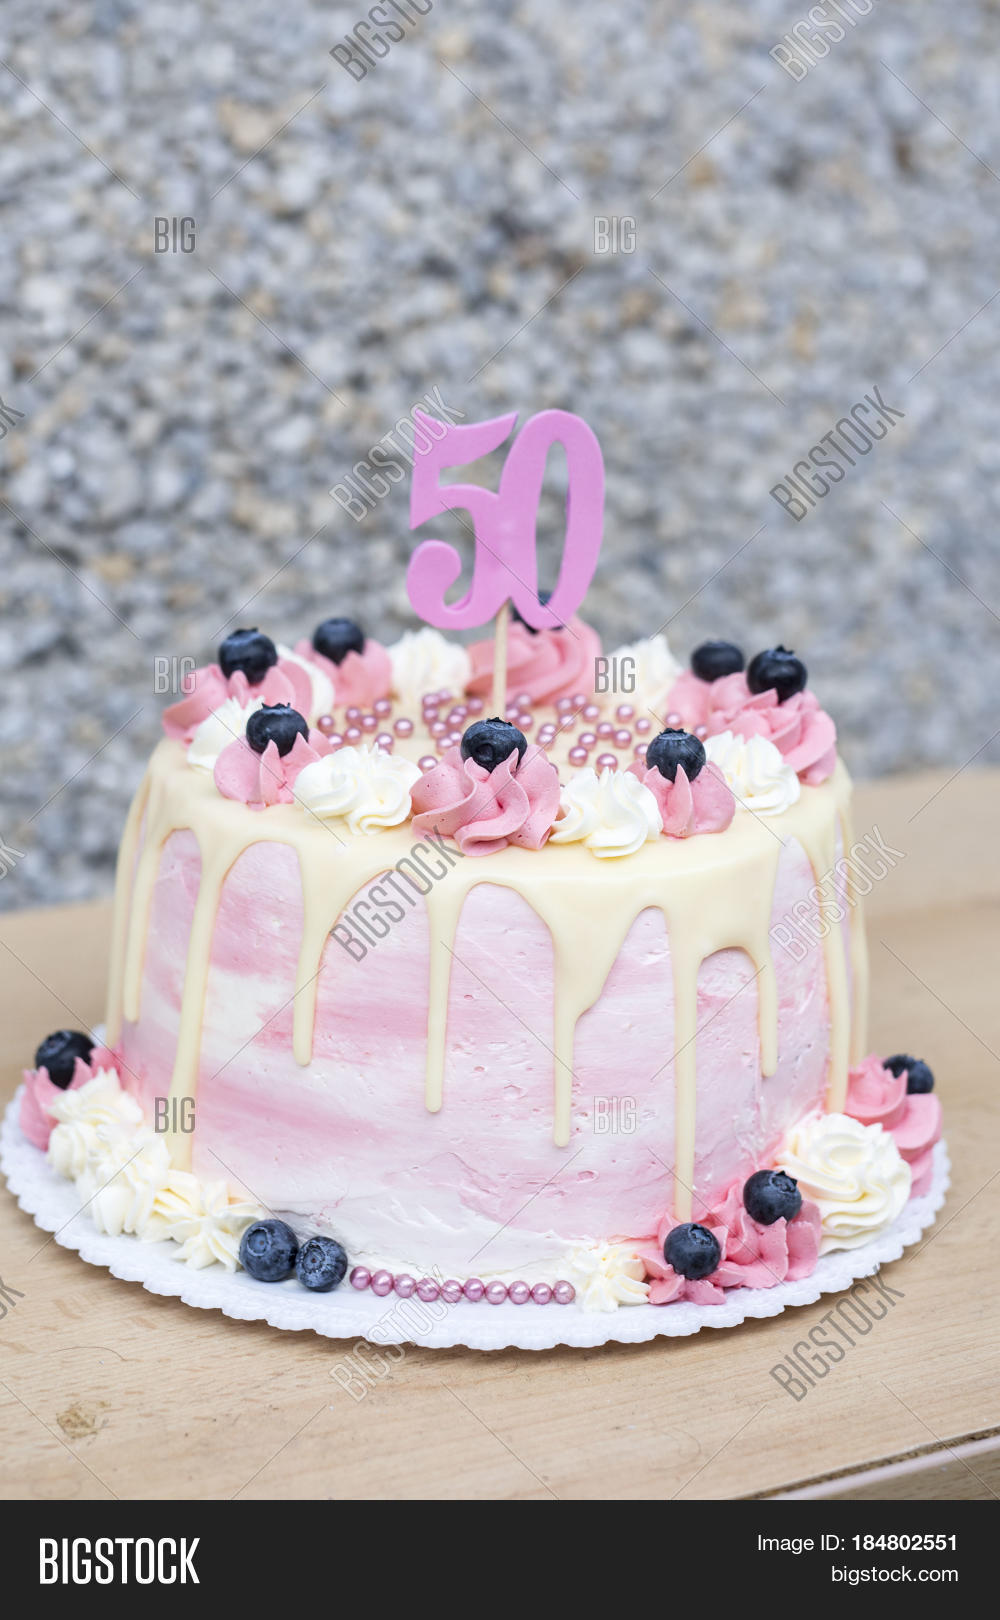 32 Quick And Easy Birthday Cake Recipes Taste Of Home